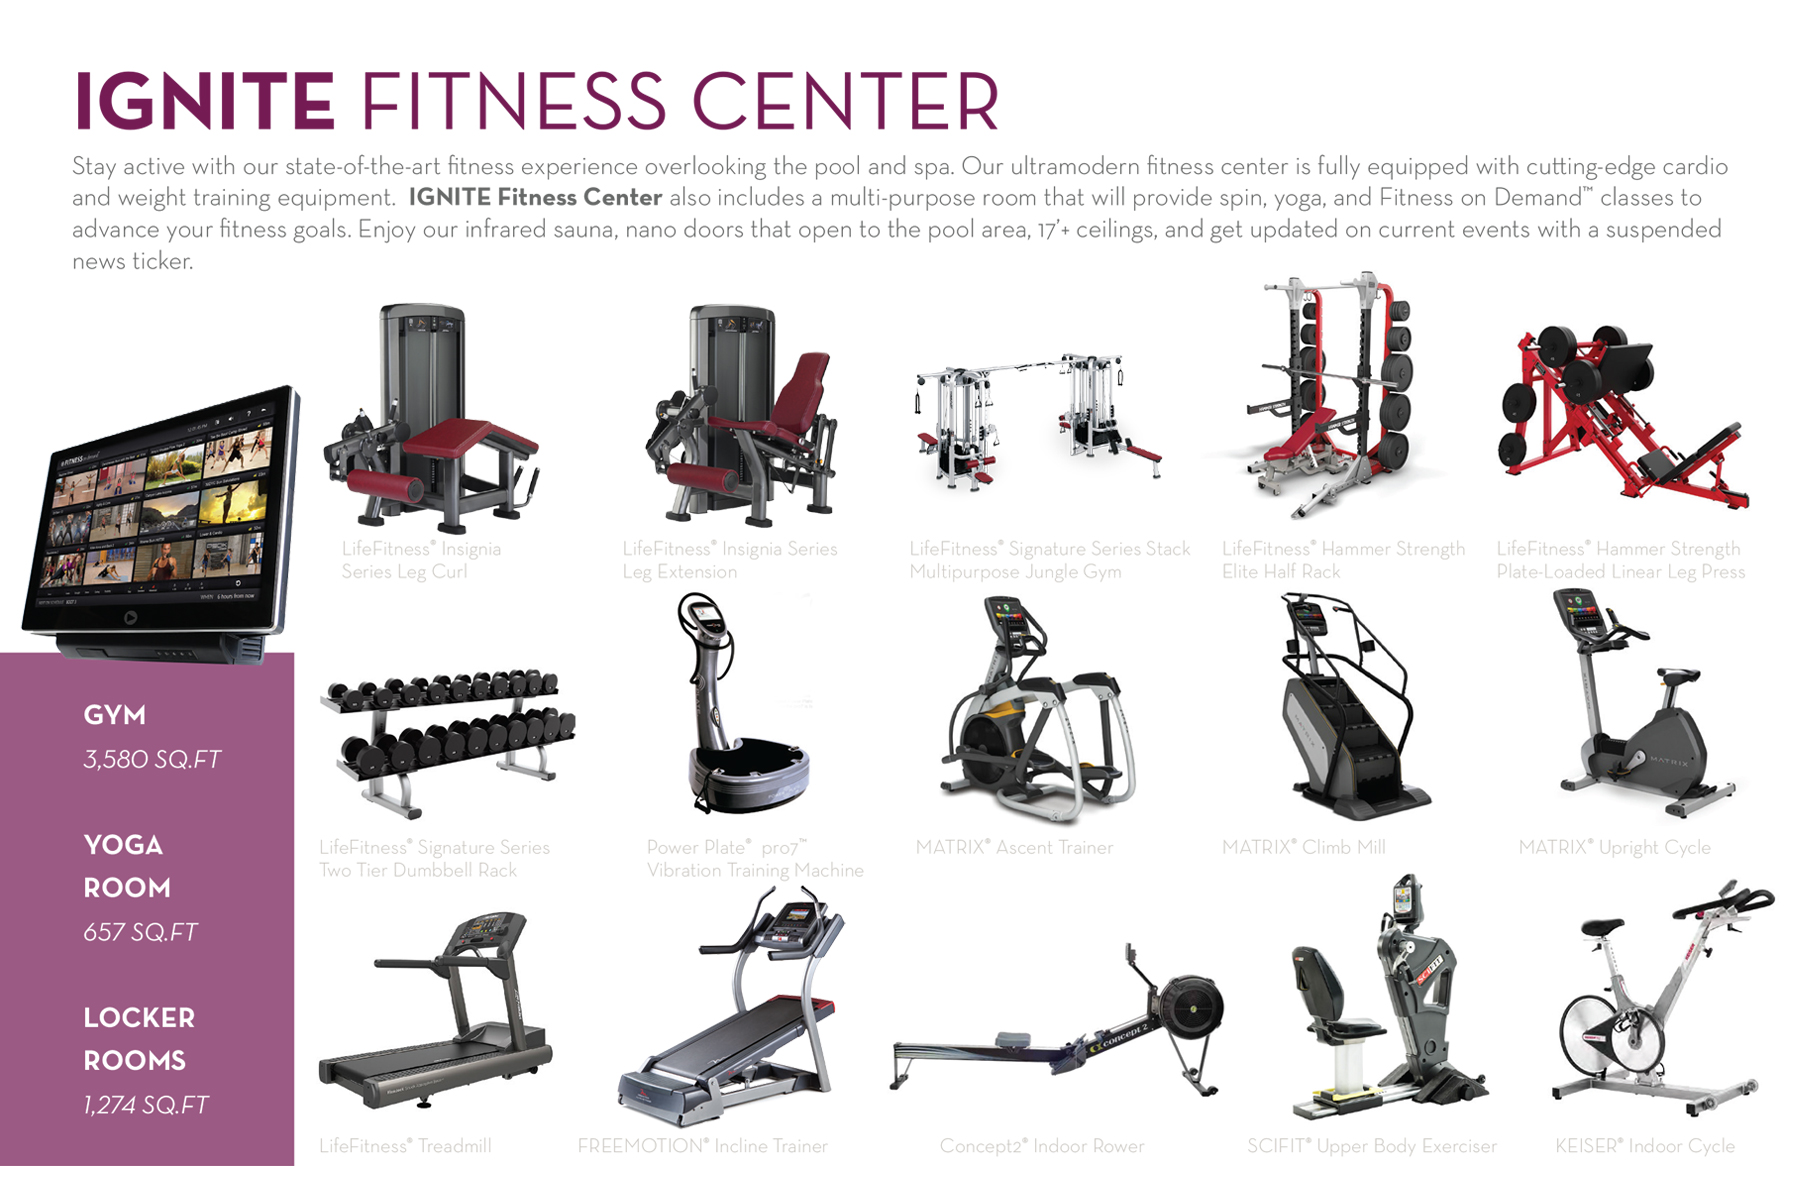 State-of-the-Art Fitness Equipment